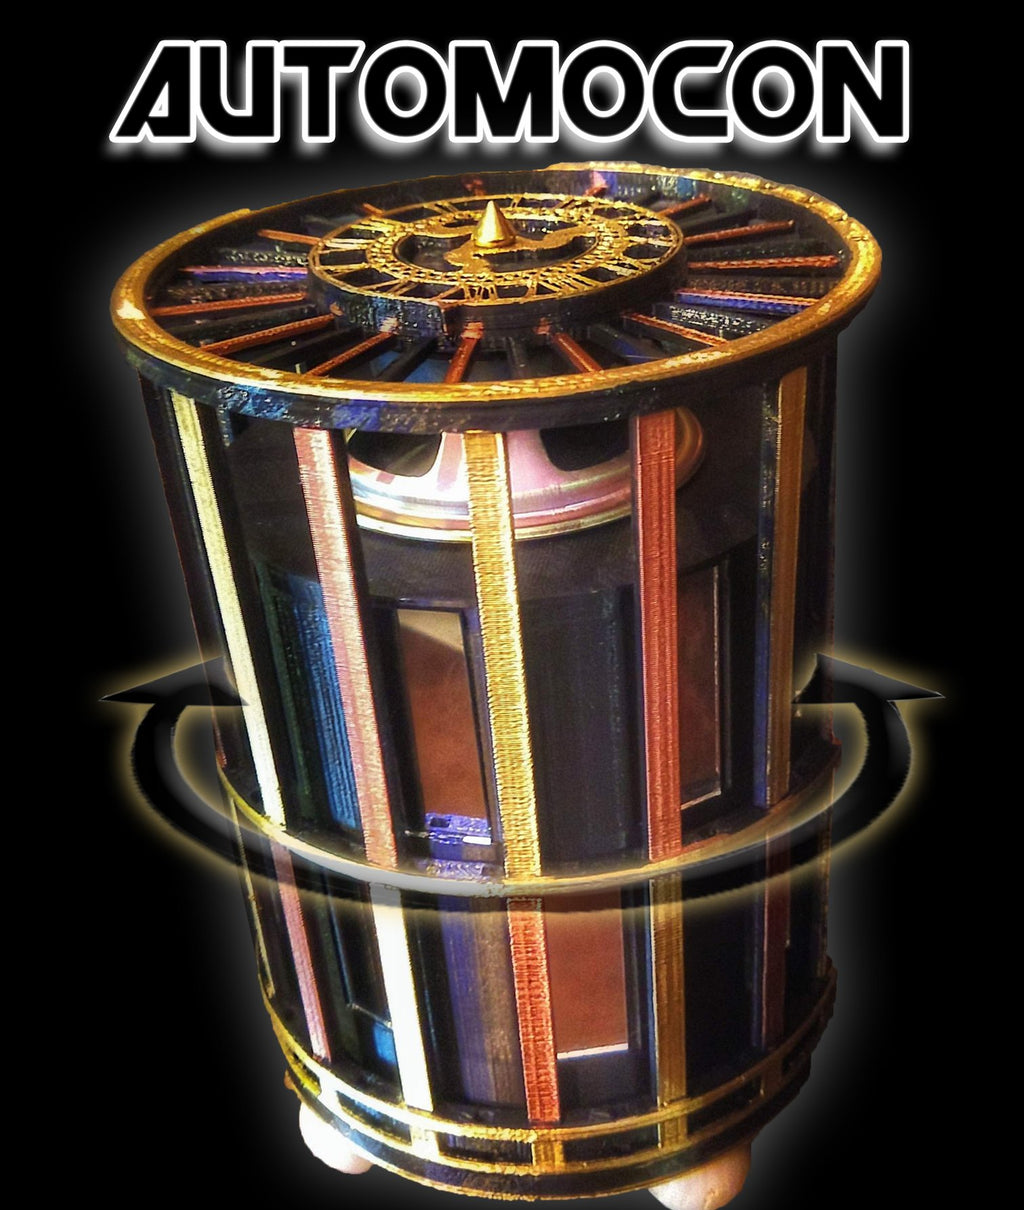 Automocon - Random Sweep Scrying Mirror & Ghost Box